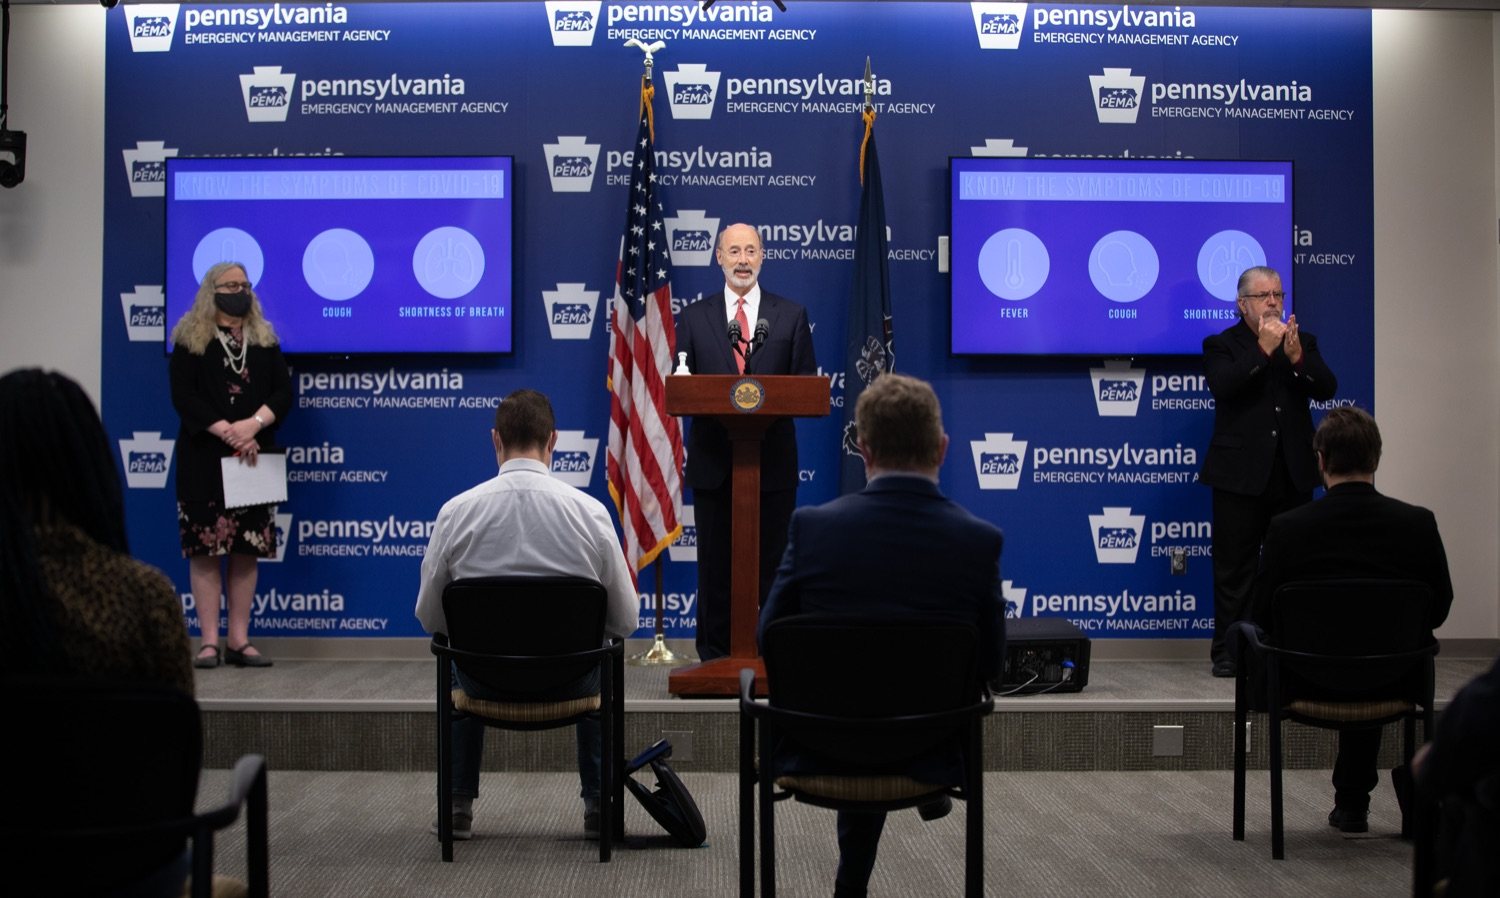 "<a href=""https://filesource.wostreaming.net/commonwealthofpa/photo/18091_gov_covid_update_dz_06.jpg"" target=""_blank"">⇣ Download Photo<br></a>Pennsylvania Governor Tom Wolf answering questions from the press.  As states across the country begin to reopen and nearly half are seeing COVID-19 cases rise, Governor Tom Wolf announced Friday that Pennsylvania is not one of them. ...Today at a daily COVID briefing with Health Secretary Dr. Rachel Levine, he noted another milestone: The Centers for Disease Control and Prevention proprietary data for states indicates that we are one of just three states that has had a downward trajectory of COVID- 19 cases for more than 42 days. The other two states are Montana and Hawaii.  JUNE 17, 2020 - HARRISBURG, PA."